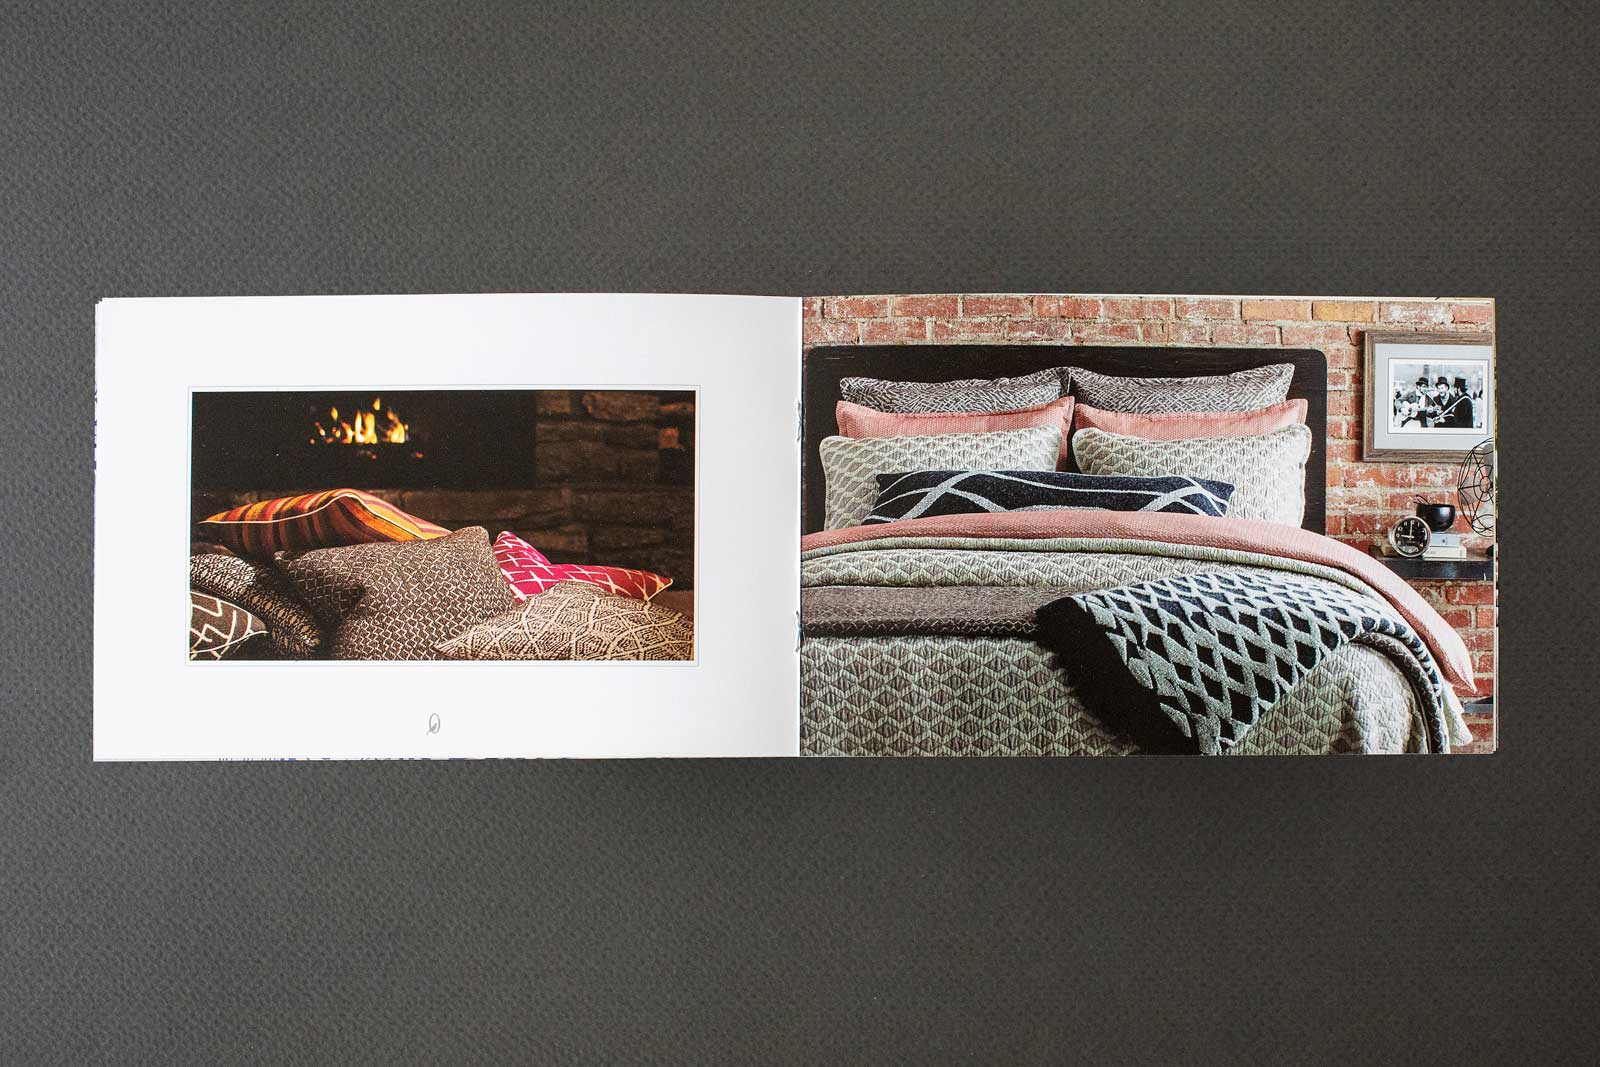 Catalog spreads for The Oriole Mill, showing a bed with woven pastel-colored comforter and pillows. Image showing factory worker.